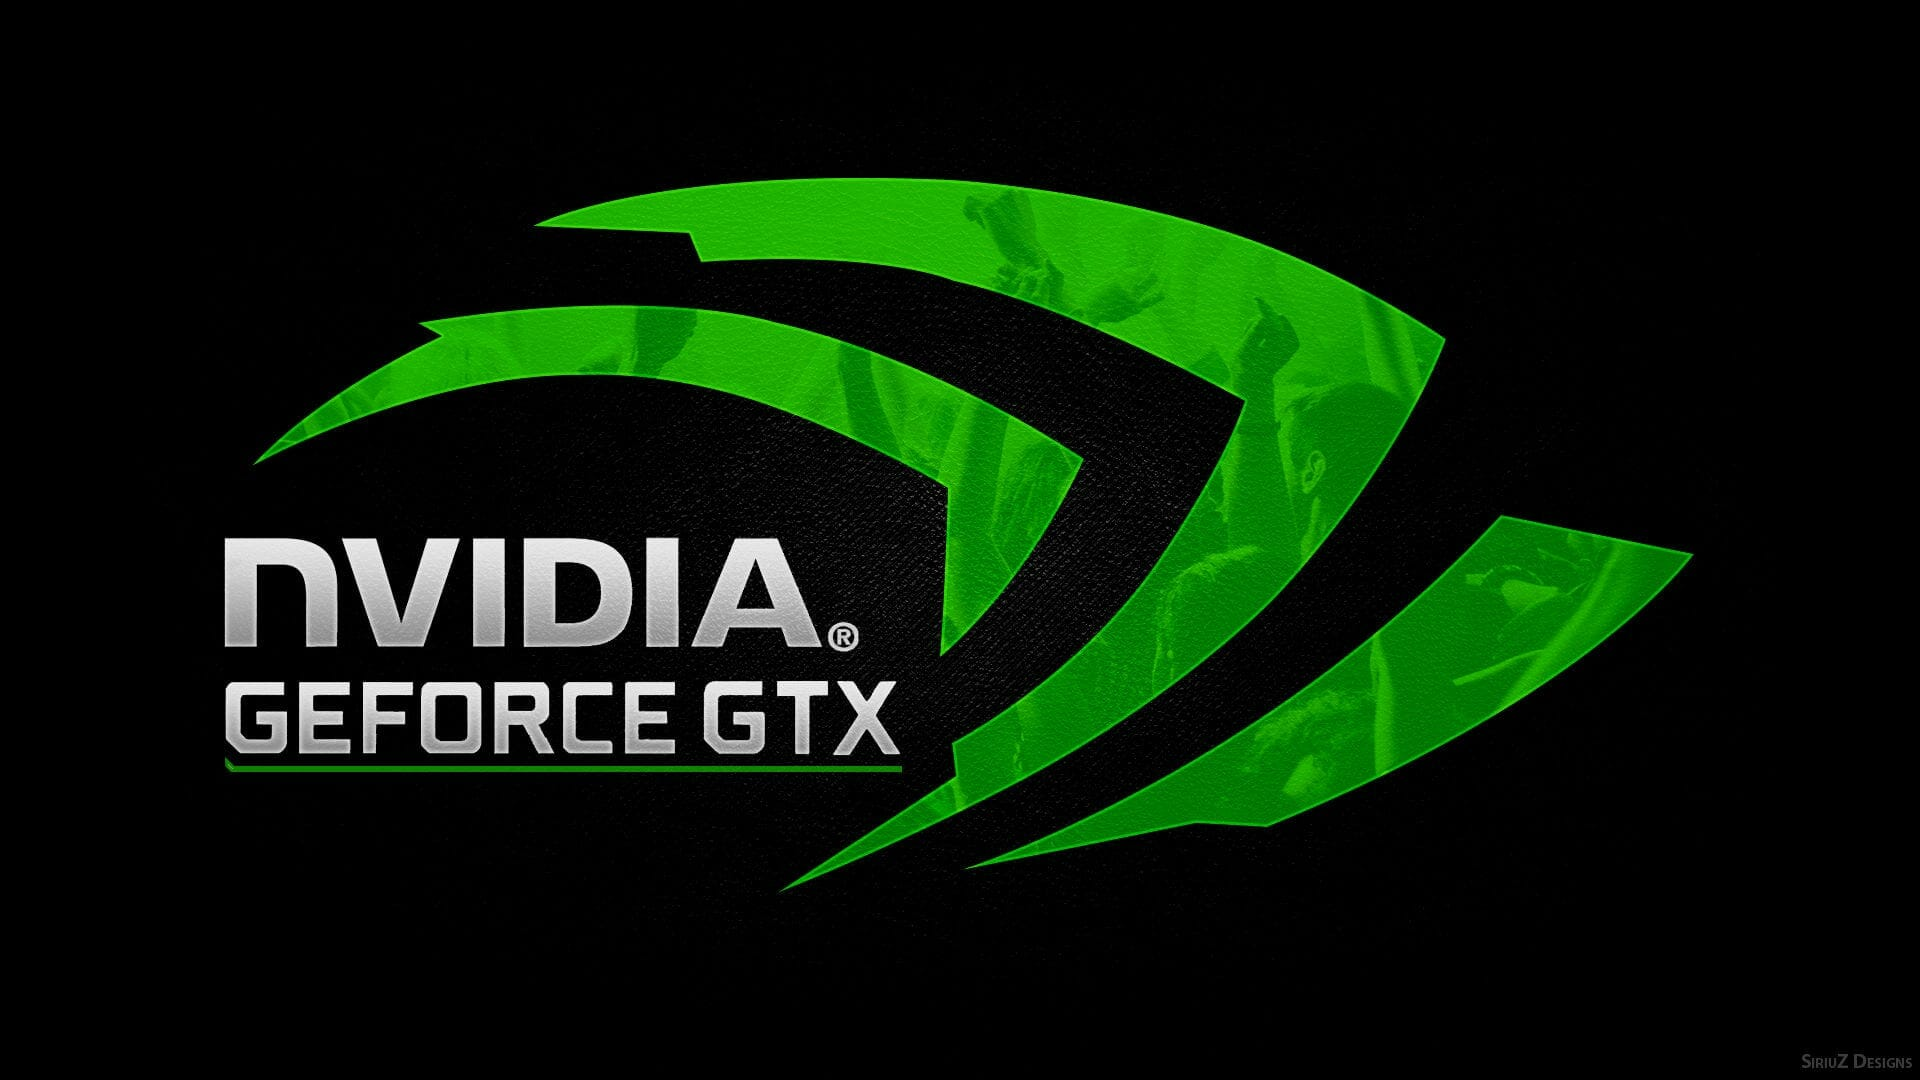 Nvidia GTX 2080 : 1180 Turing Graphics Card Manufacture Design